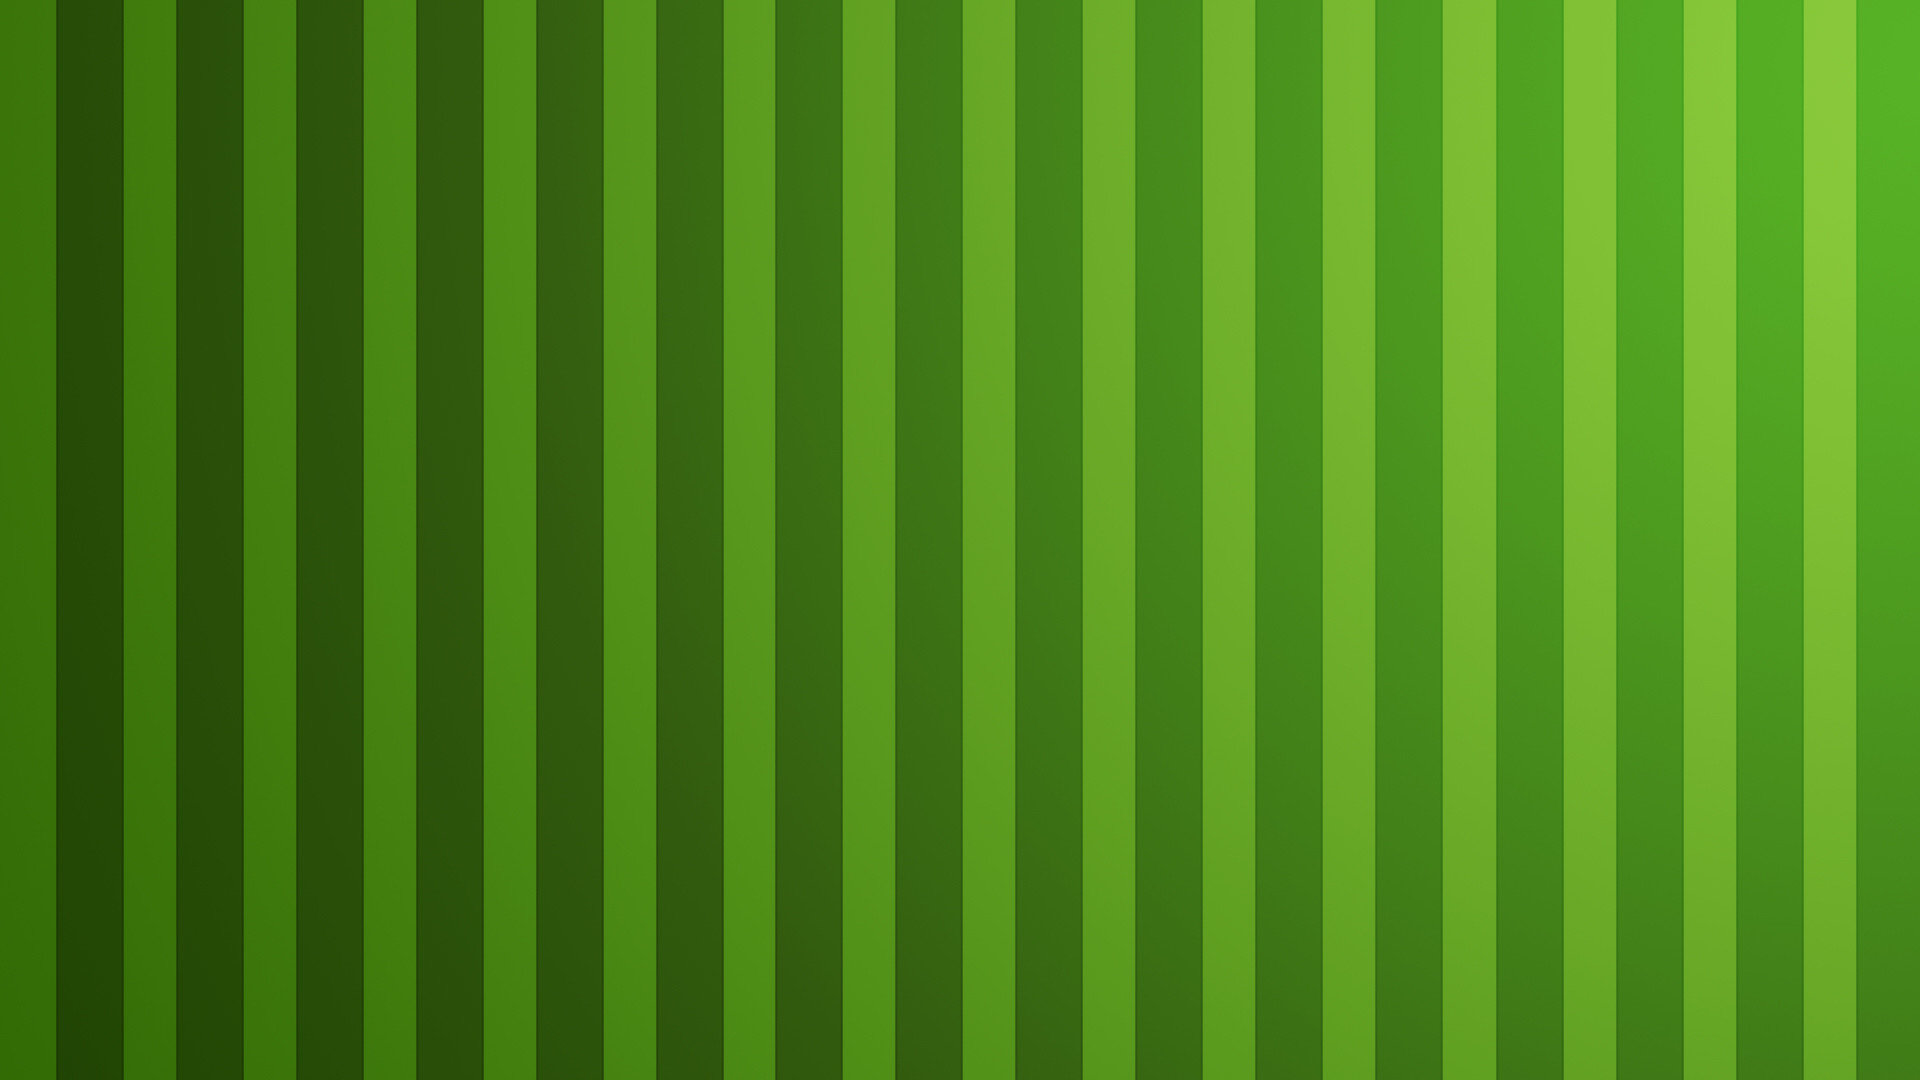 1920x1080 green wallpaper hd cool images free colourful pictures mac desktop images  samsung phone wallpapers display digital photos 1920×1080 Wallpaper HD